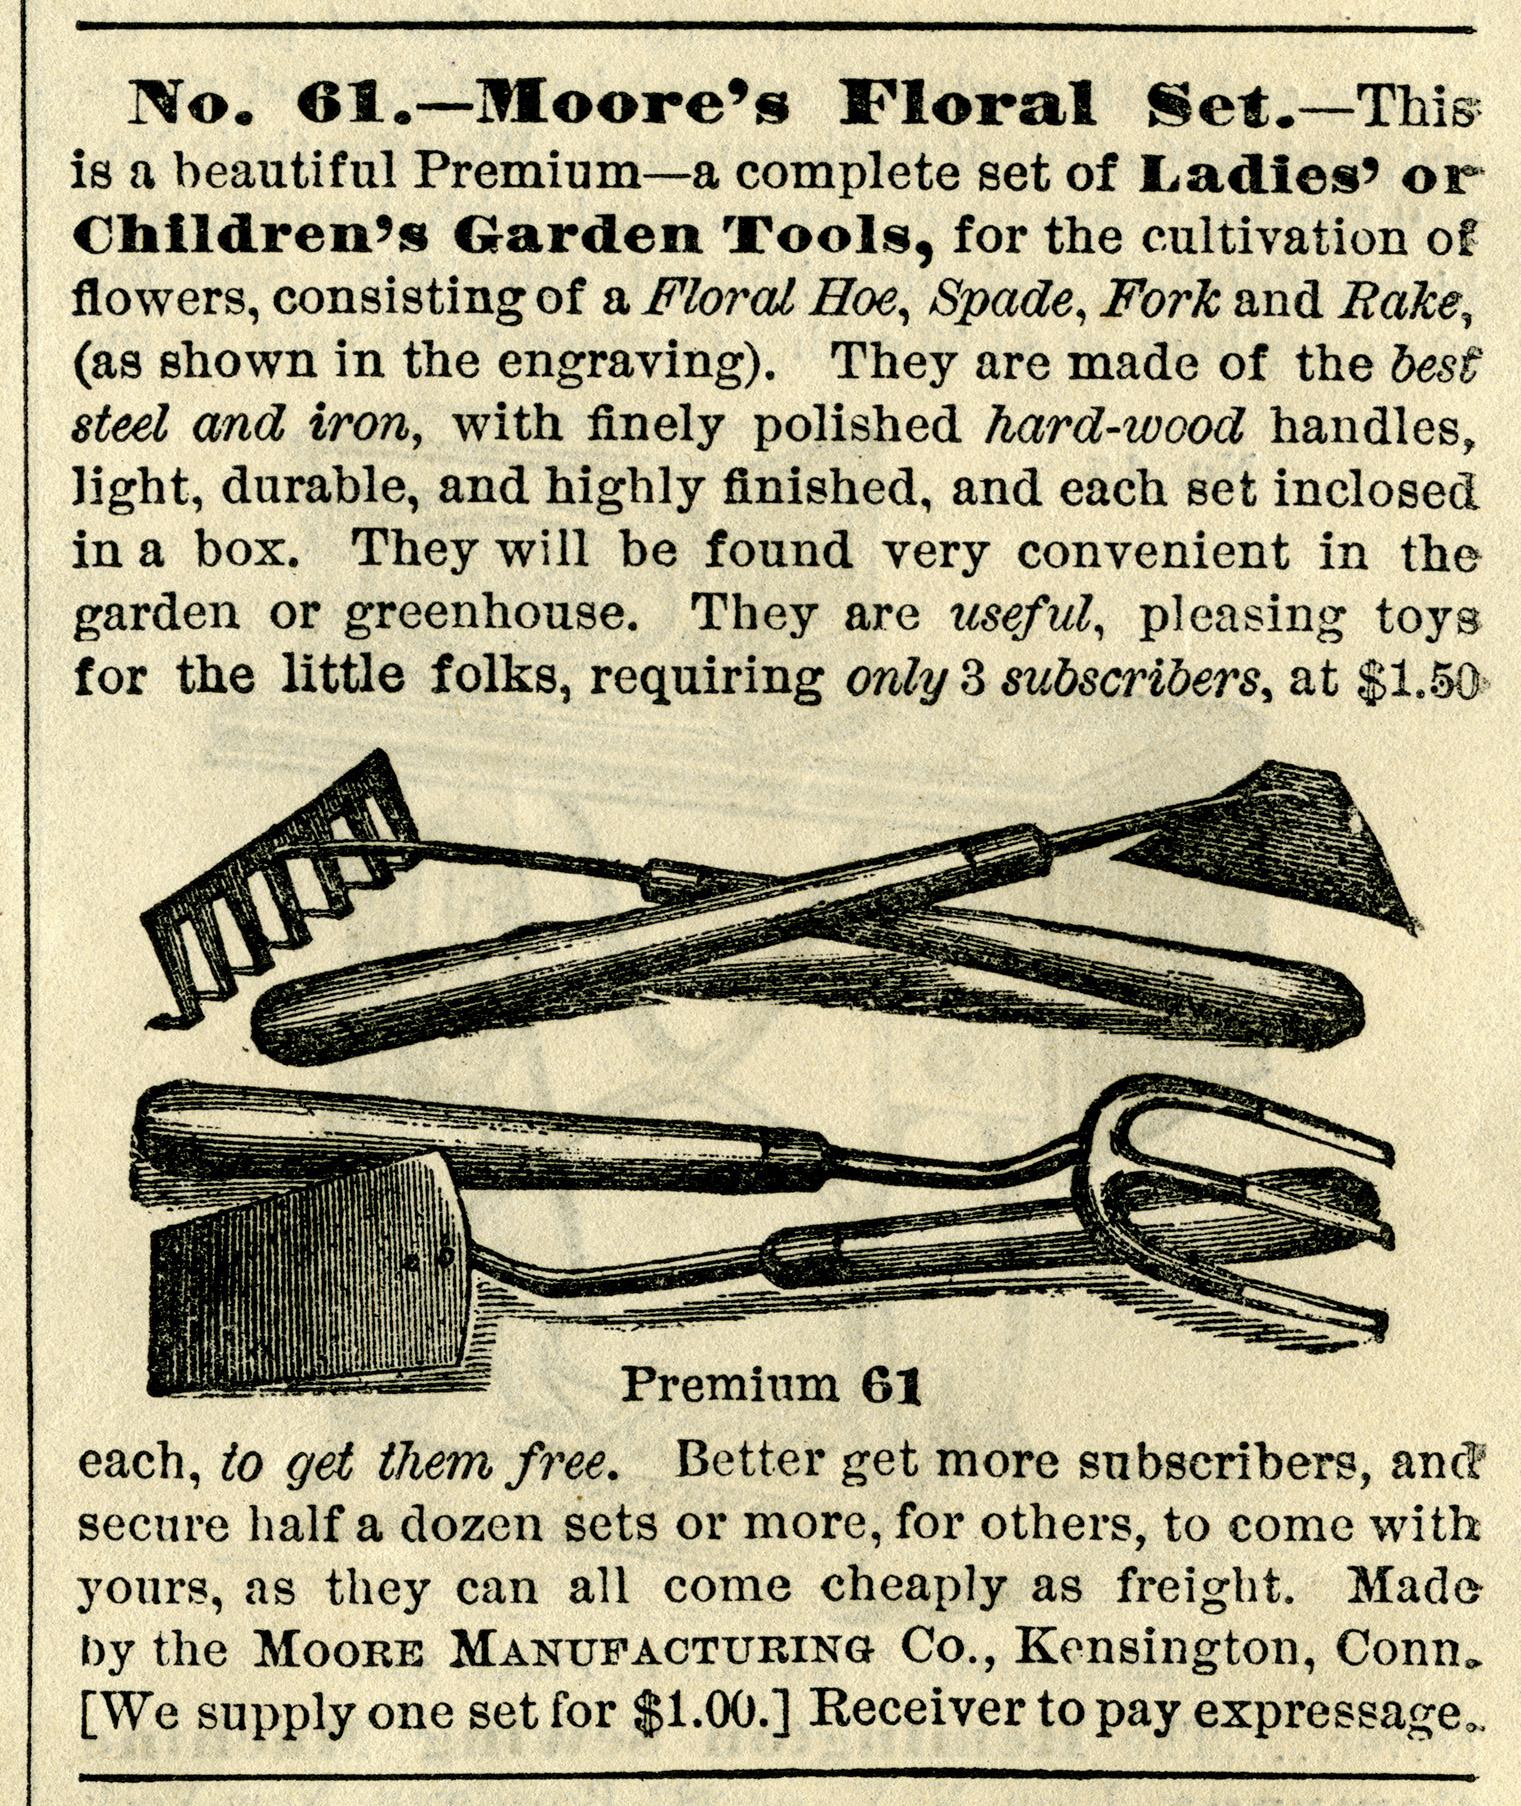 ... Vintage Garden Clipart, Free Black And White Graphics, Antique Garden  Tools, Vintage Magazine